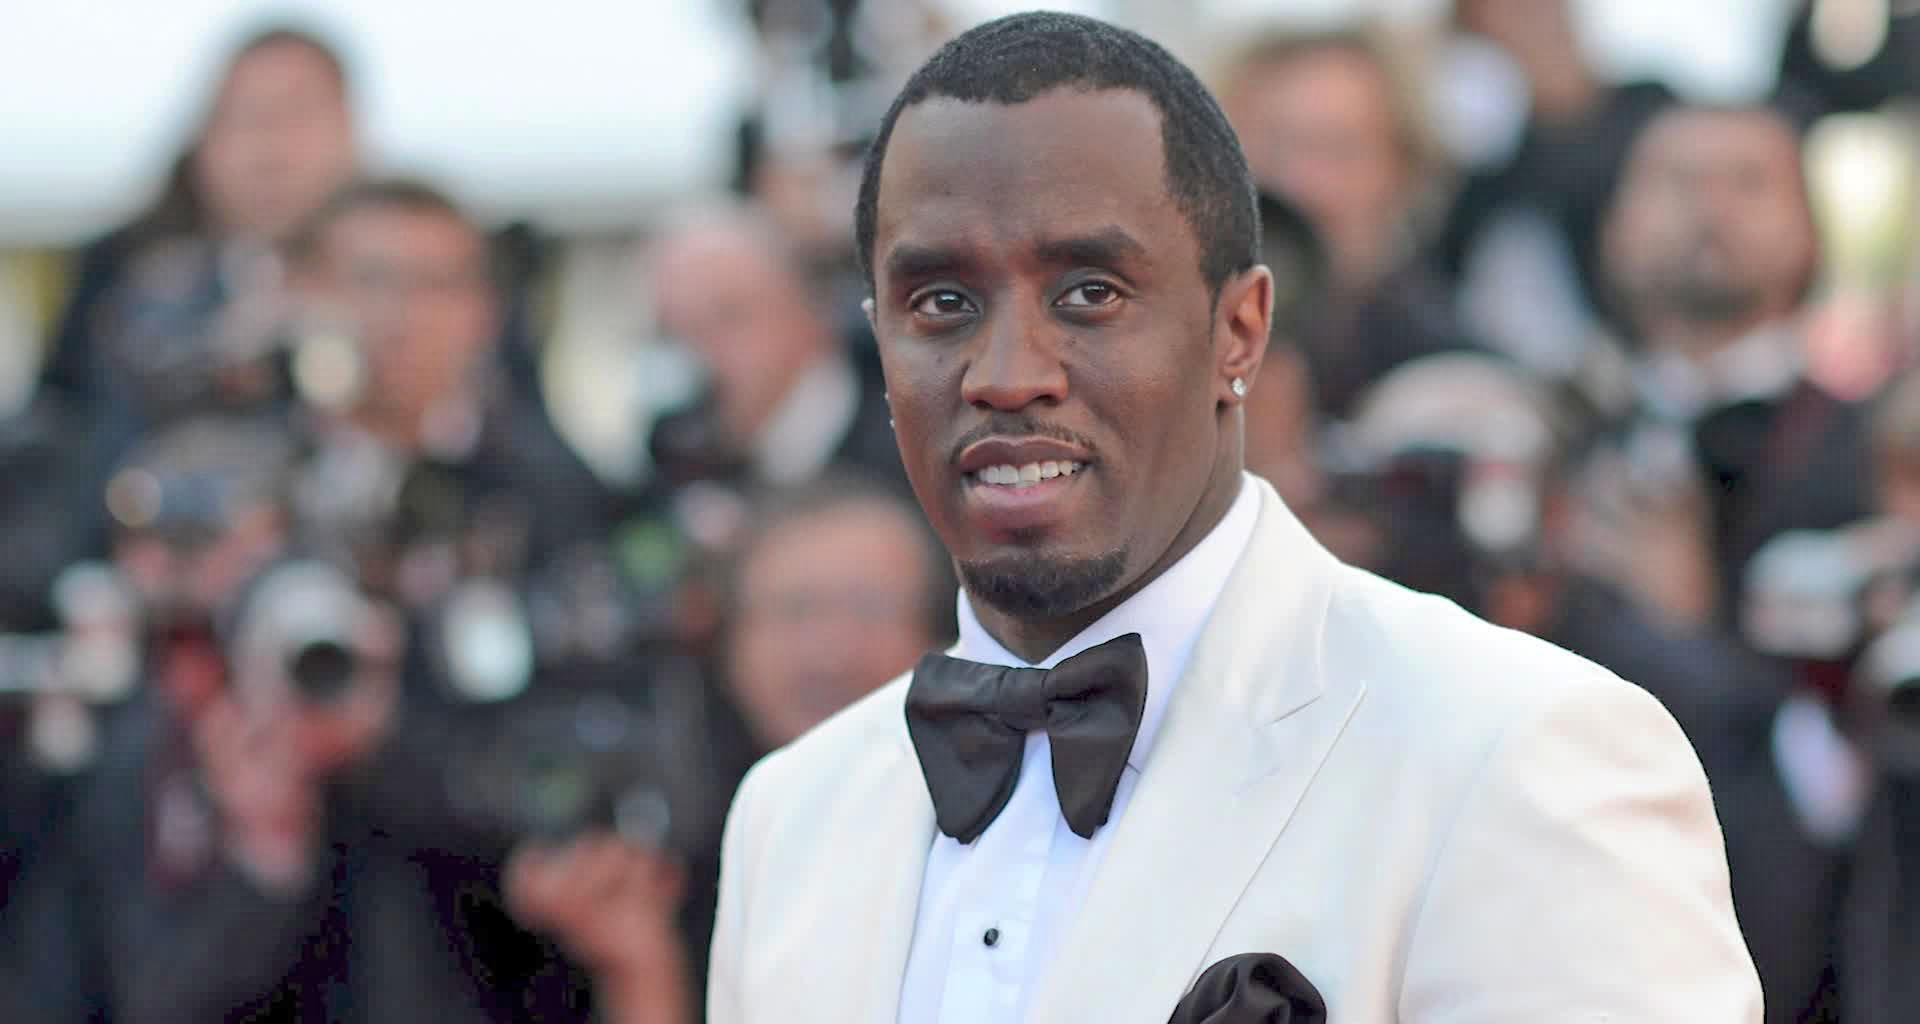 Diddy Shows Fans How He Celebrated The 420 Day - Check Out His Pics